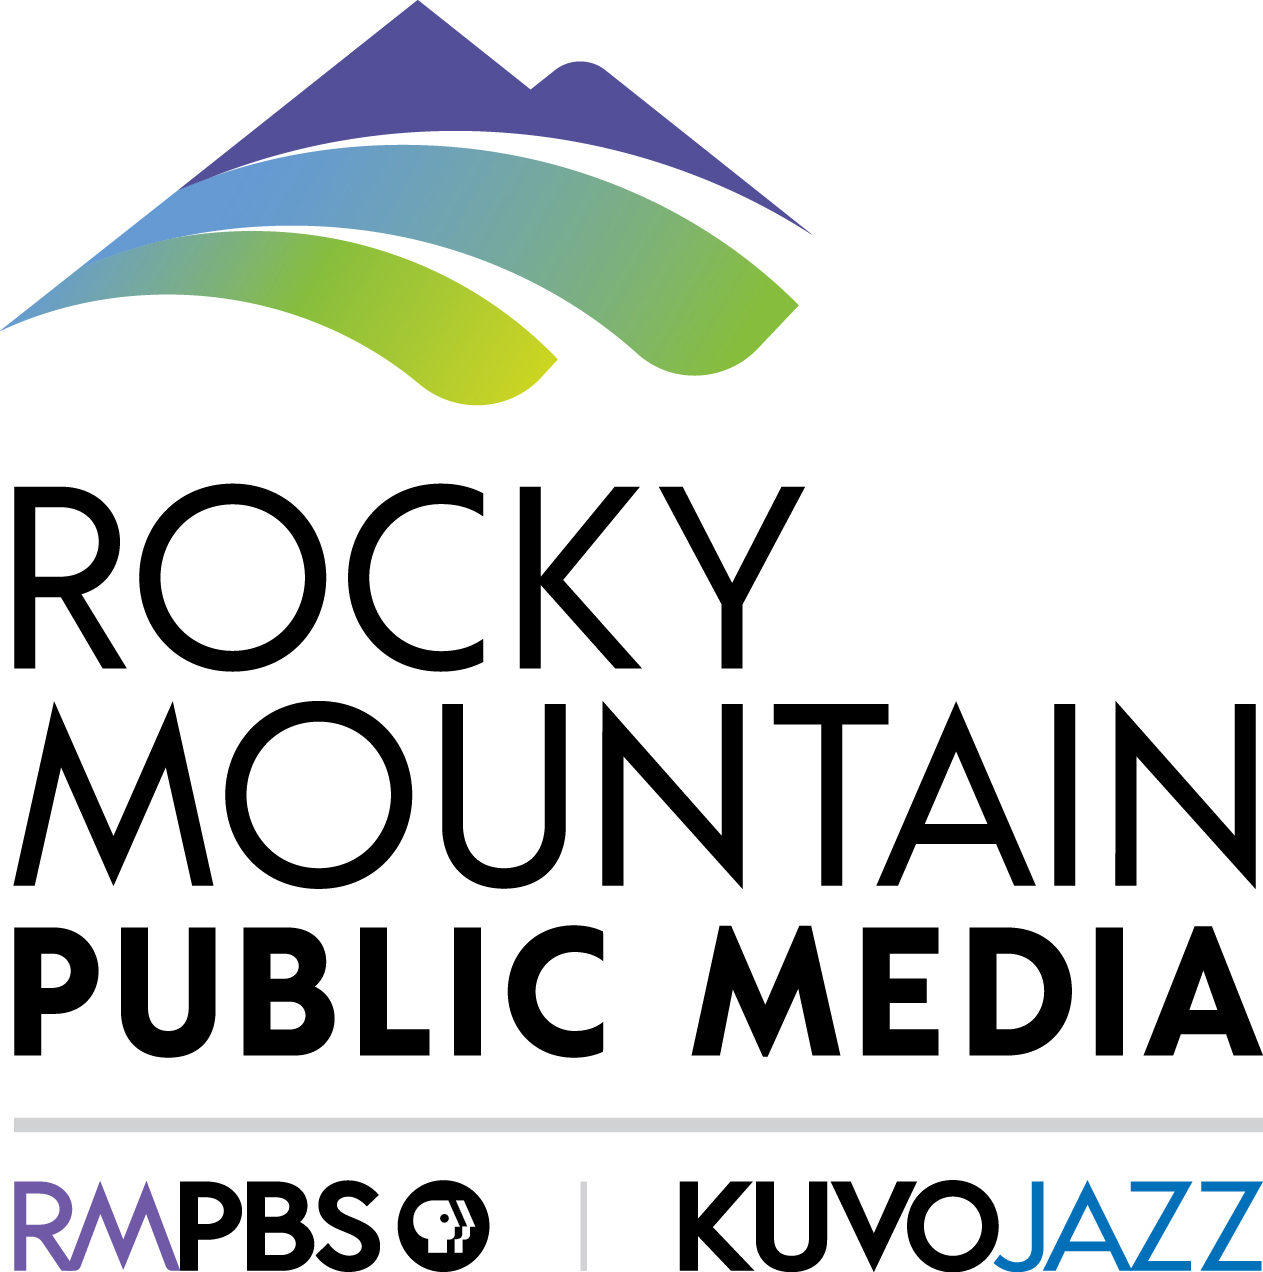 RM_Public_Media_service_line_logo_color.jpg